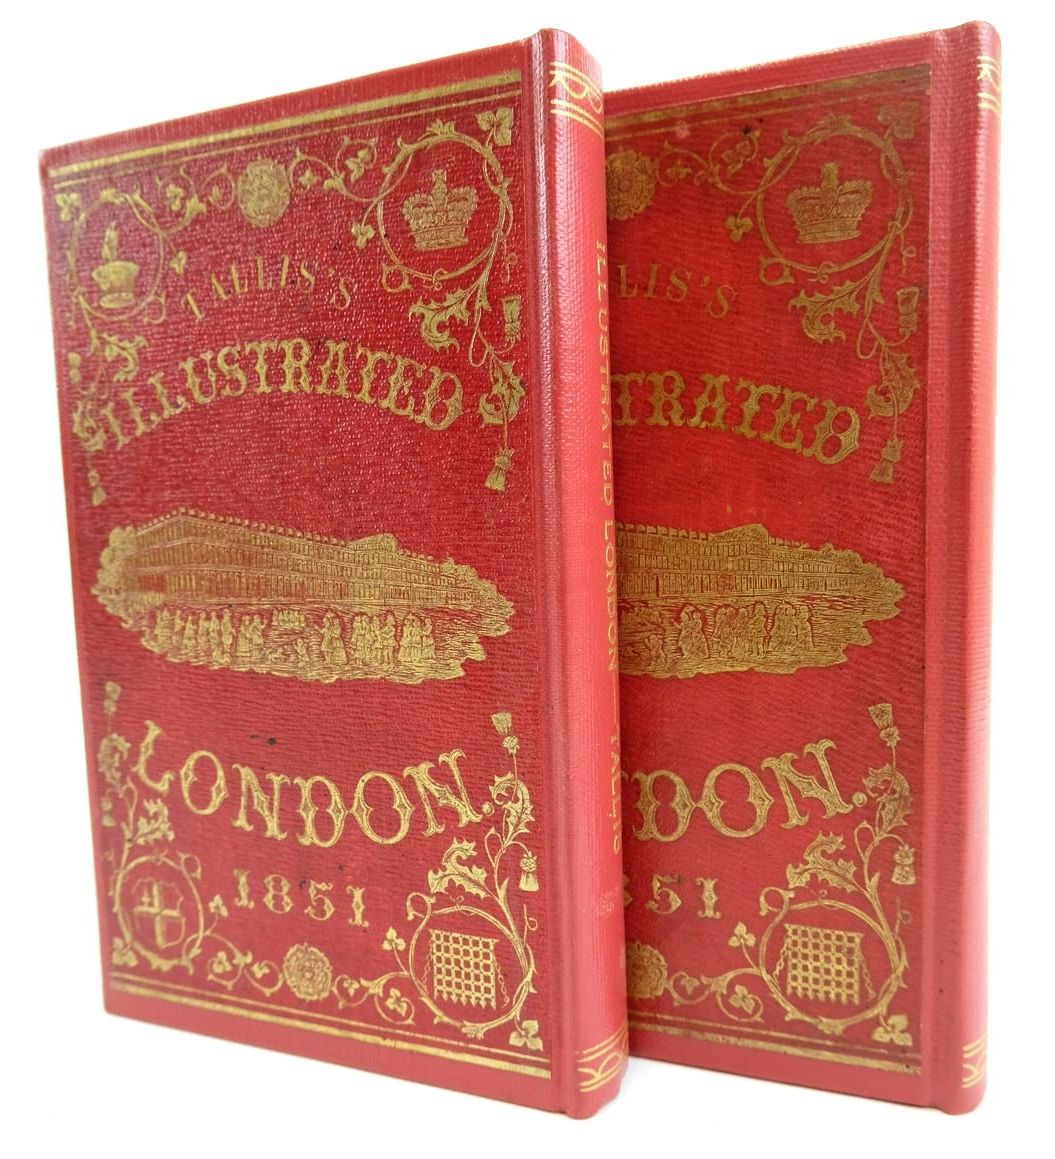 Photo of TALLIS'S ILLUSTRATED LONDON IN COMMEMORATION OF THE GREAT EXHIBITION OF ALL NATIONS IN 1851 VOLUME II written by Gaspey, William published by John Tallis & Company (STOCK CODE: 2133860)  for sale by Stella & Rose's Books